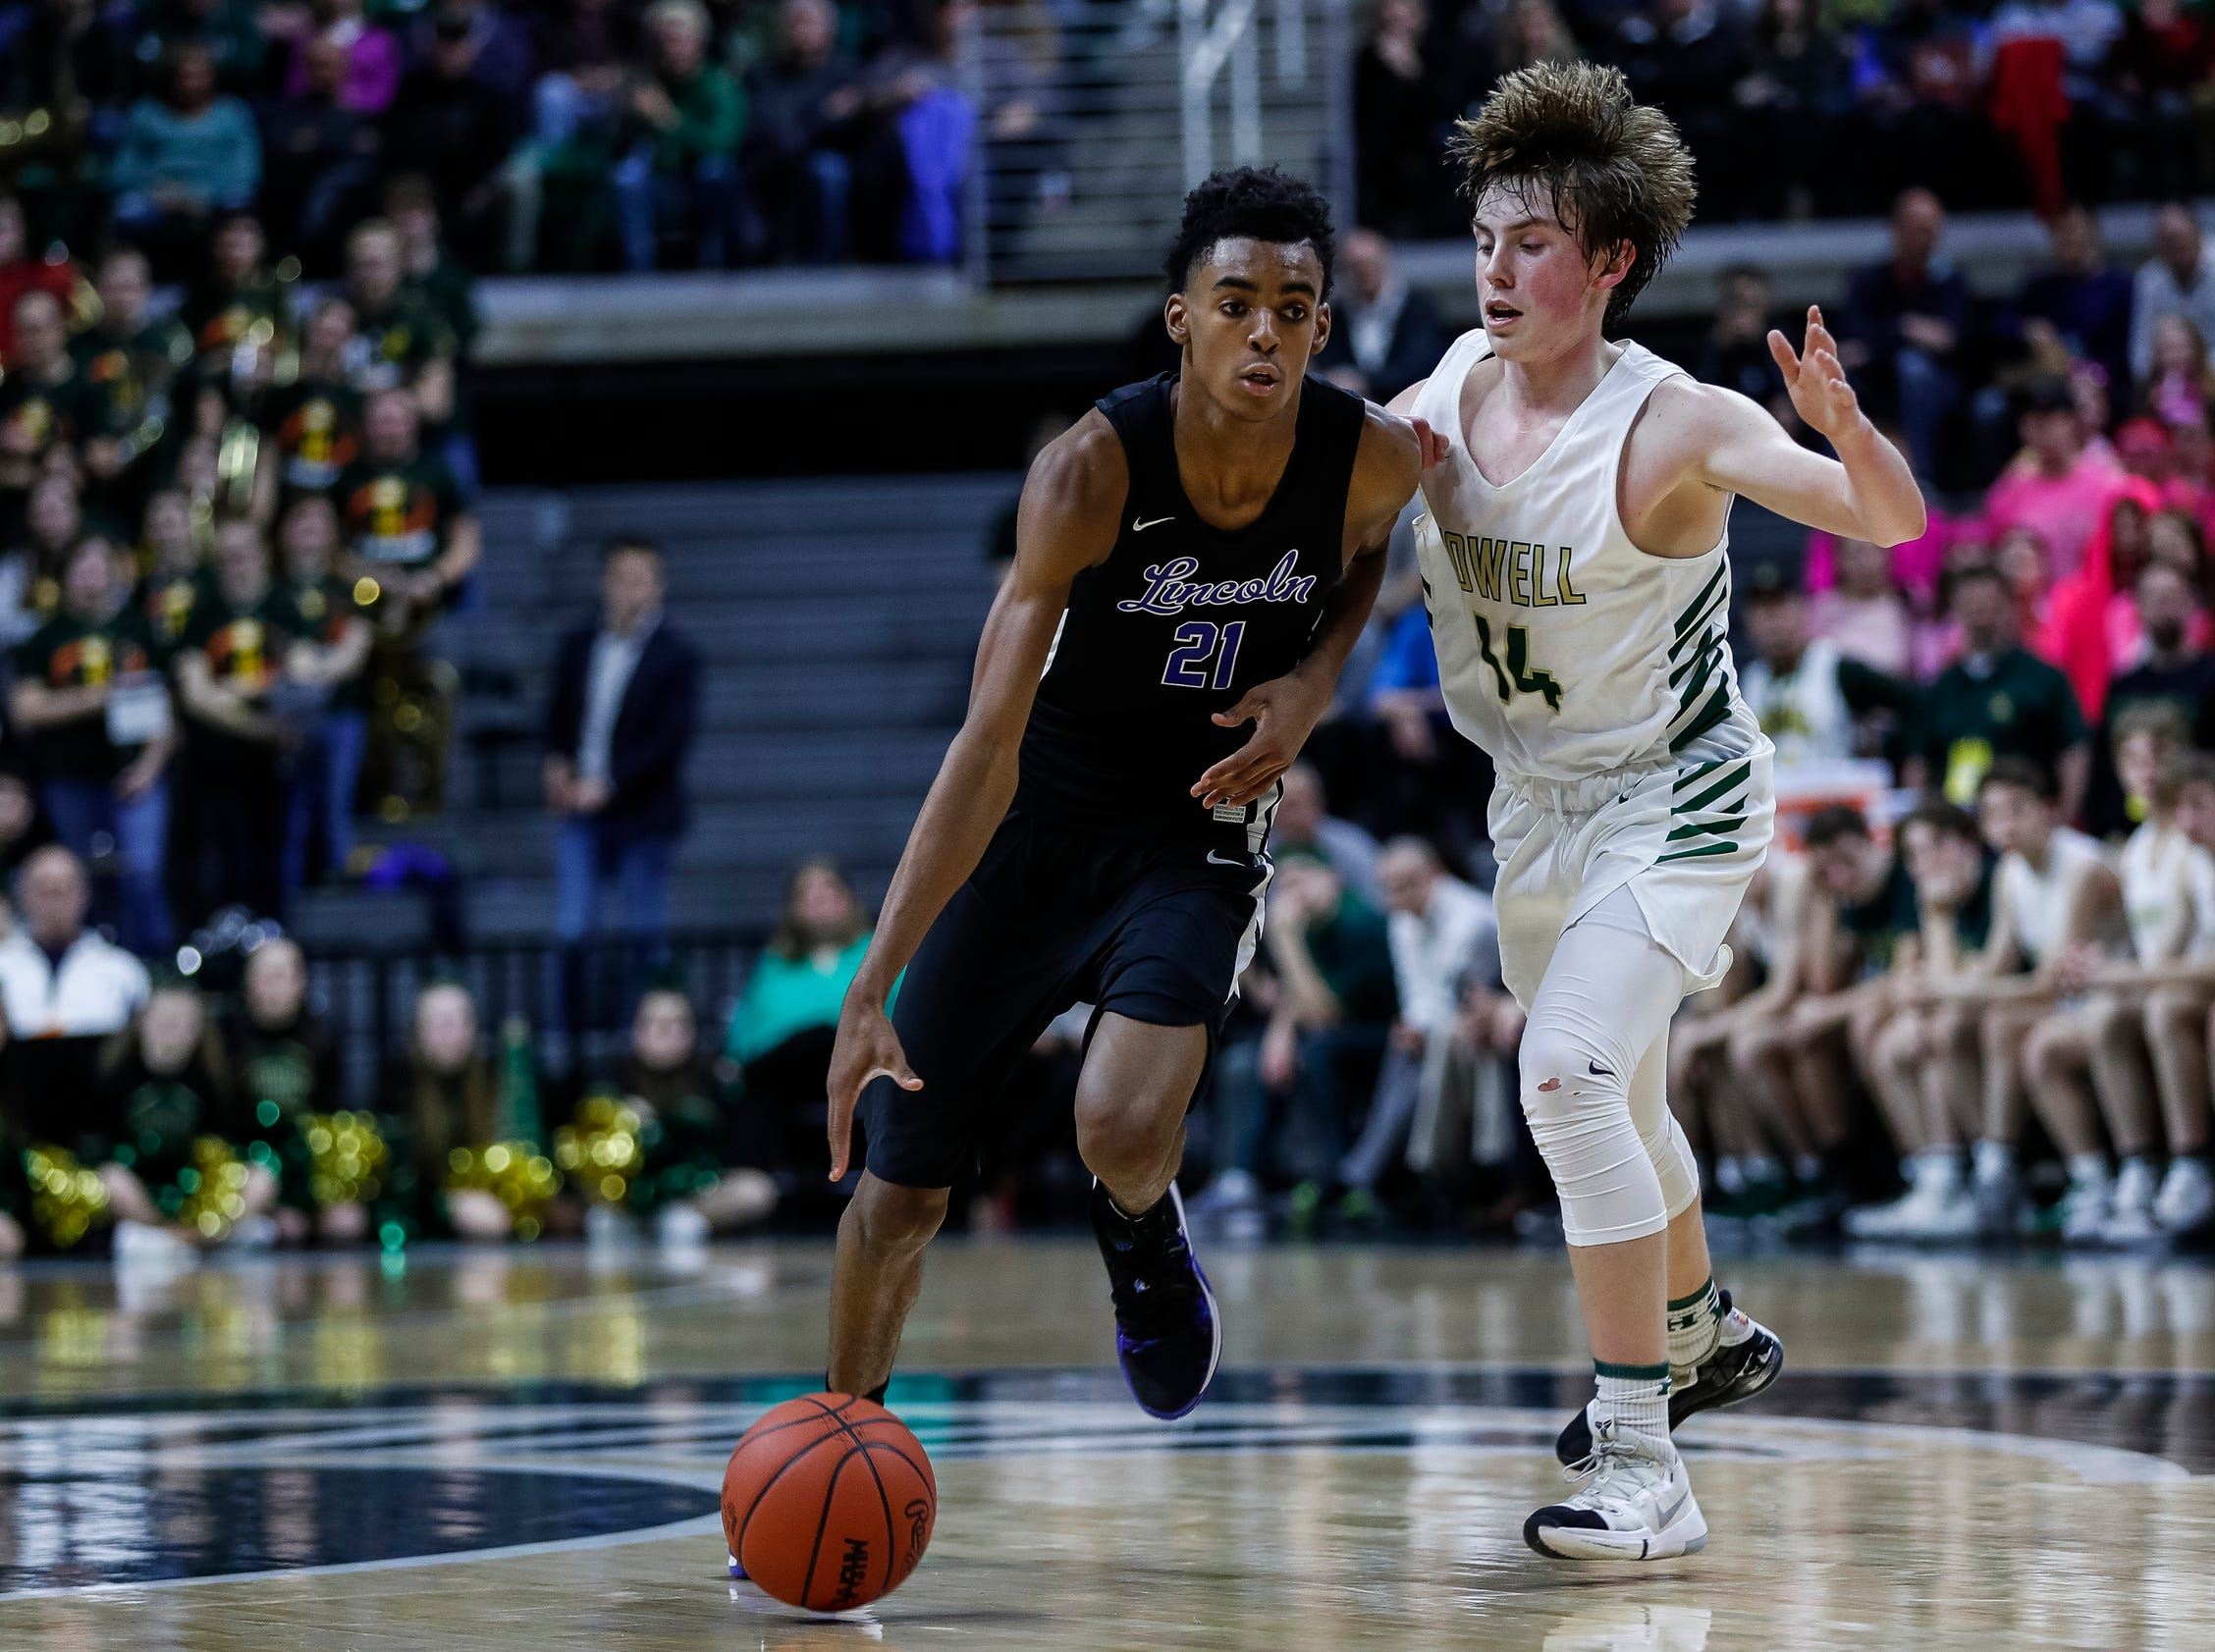 Ypsilanti Lincoln's Emoni Bates (21) is defended by Howell's Bobby Samples (14) during the second half of MHSAA Division 1 semifinal at the Breslin Center in East Lansing, Friday, March 15, 2019.